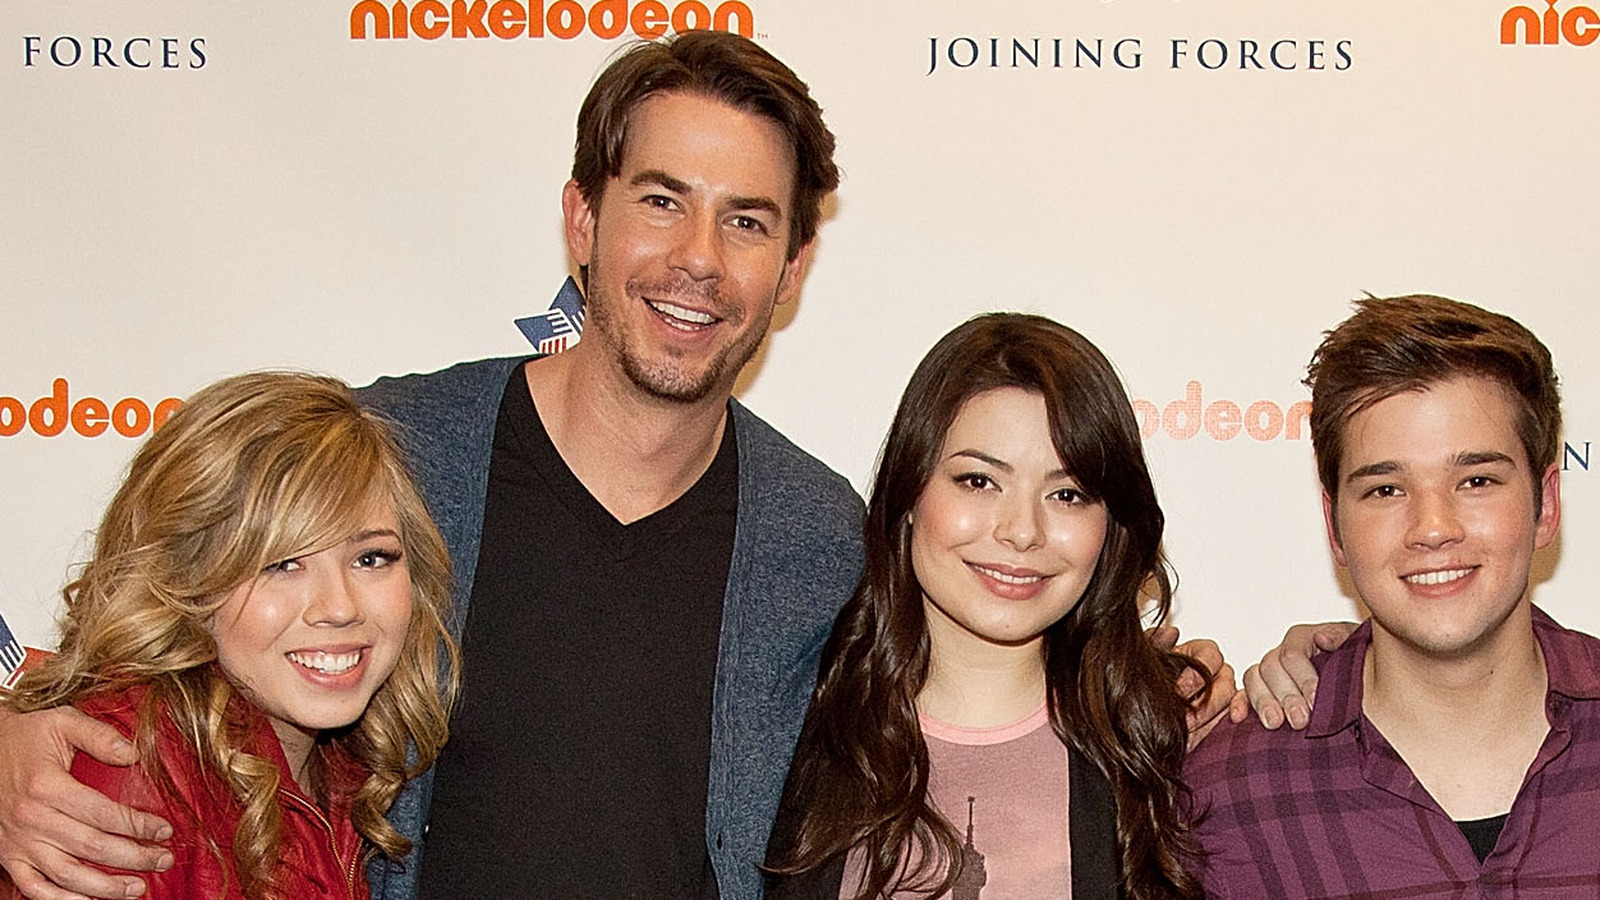 Heres What The Cast Of iCarly Is Doing Now